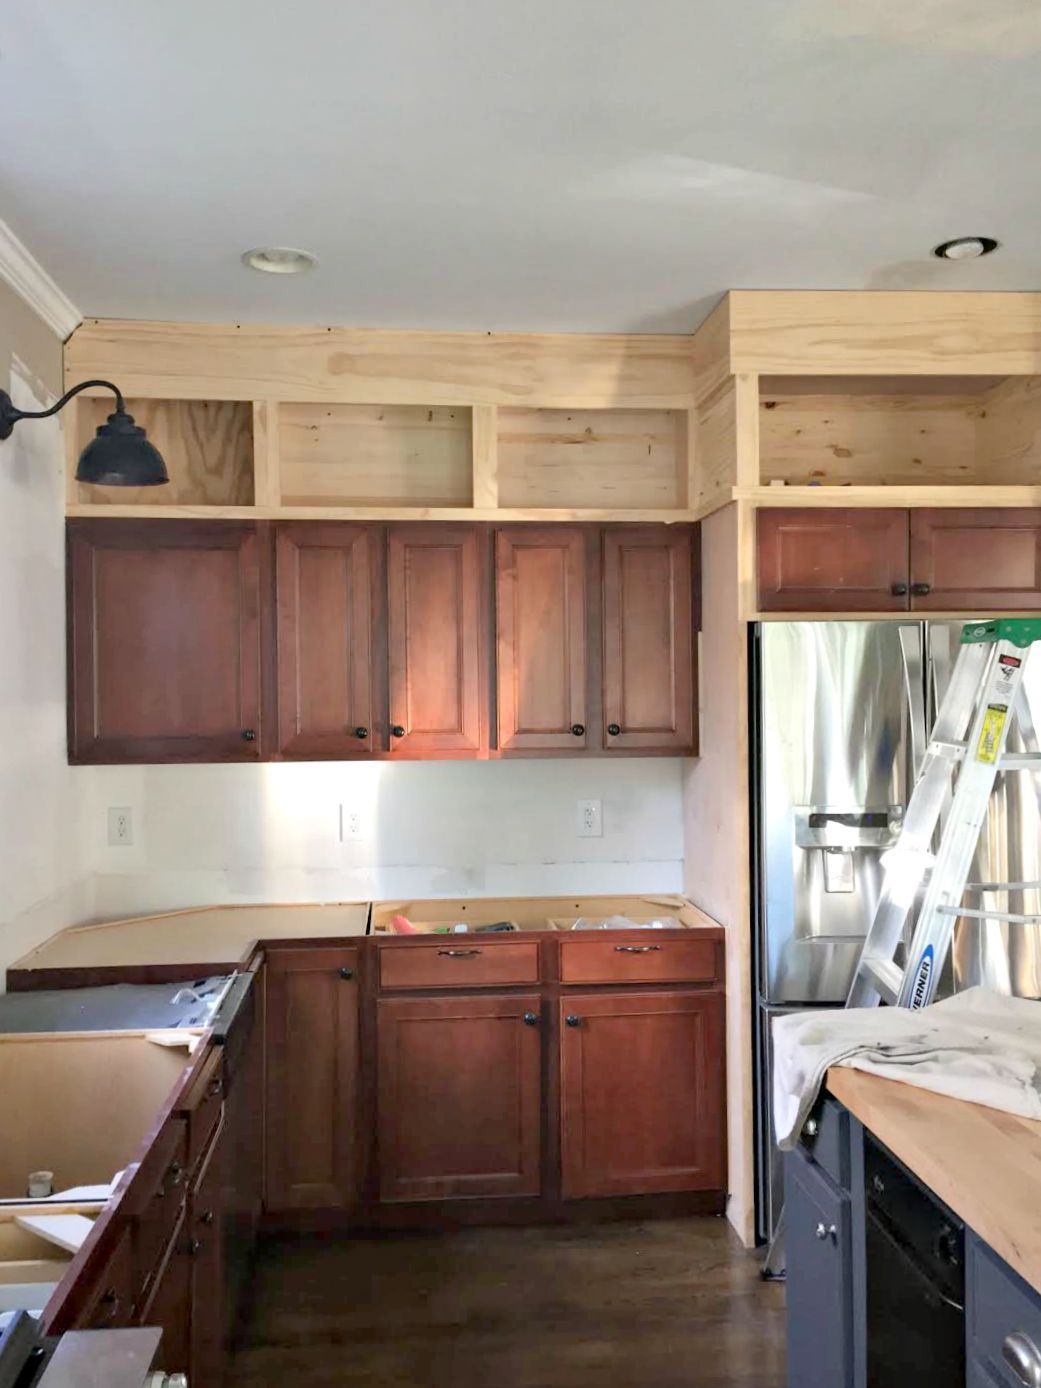 Kitchen Cabinets To The Ceiling Adorable Building Cabinets Up To The Ceiling  Building Kitchen Cabinets . Inspiration